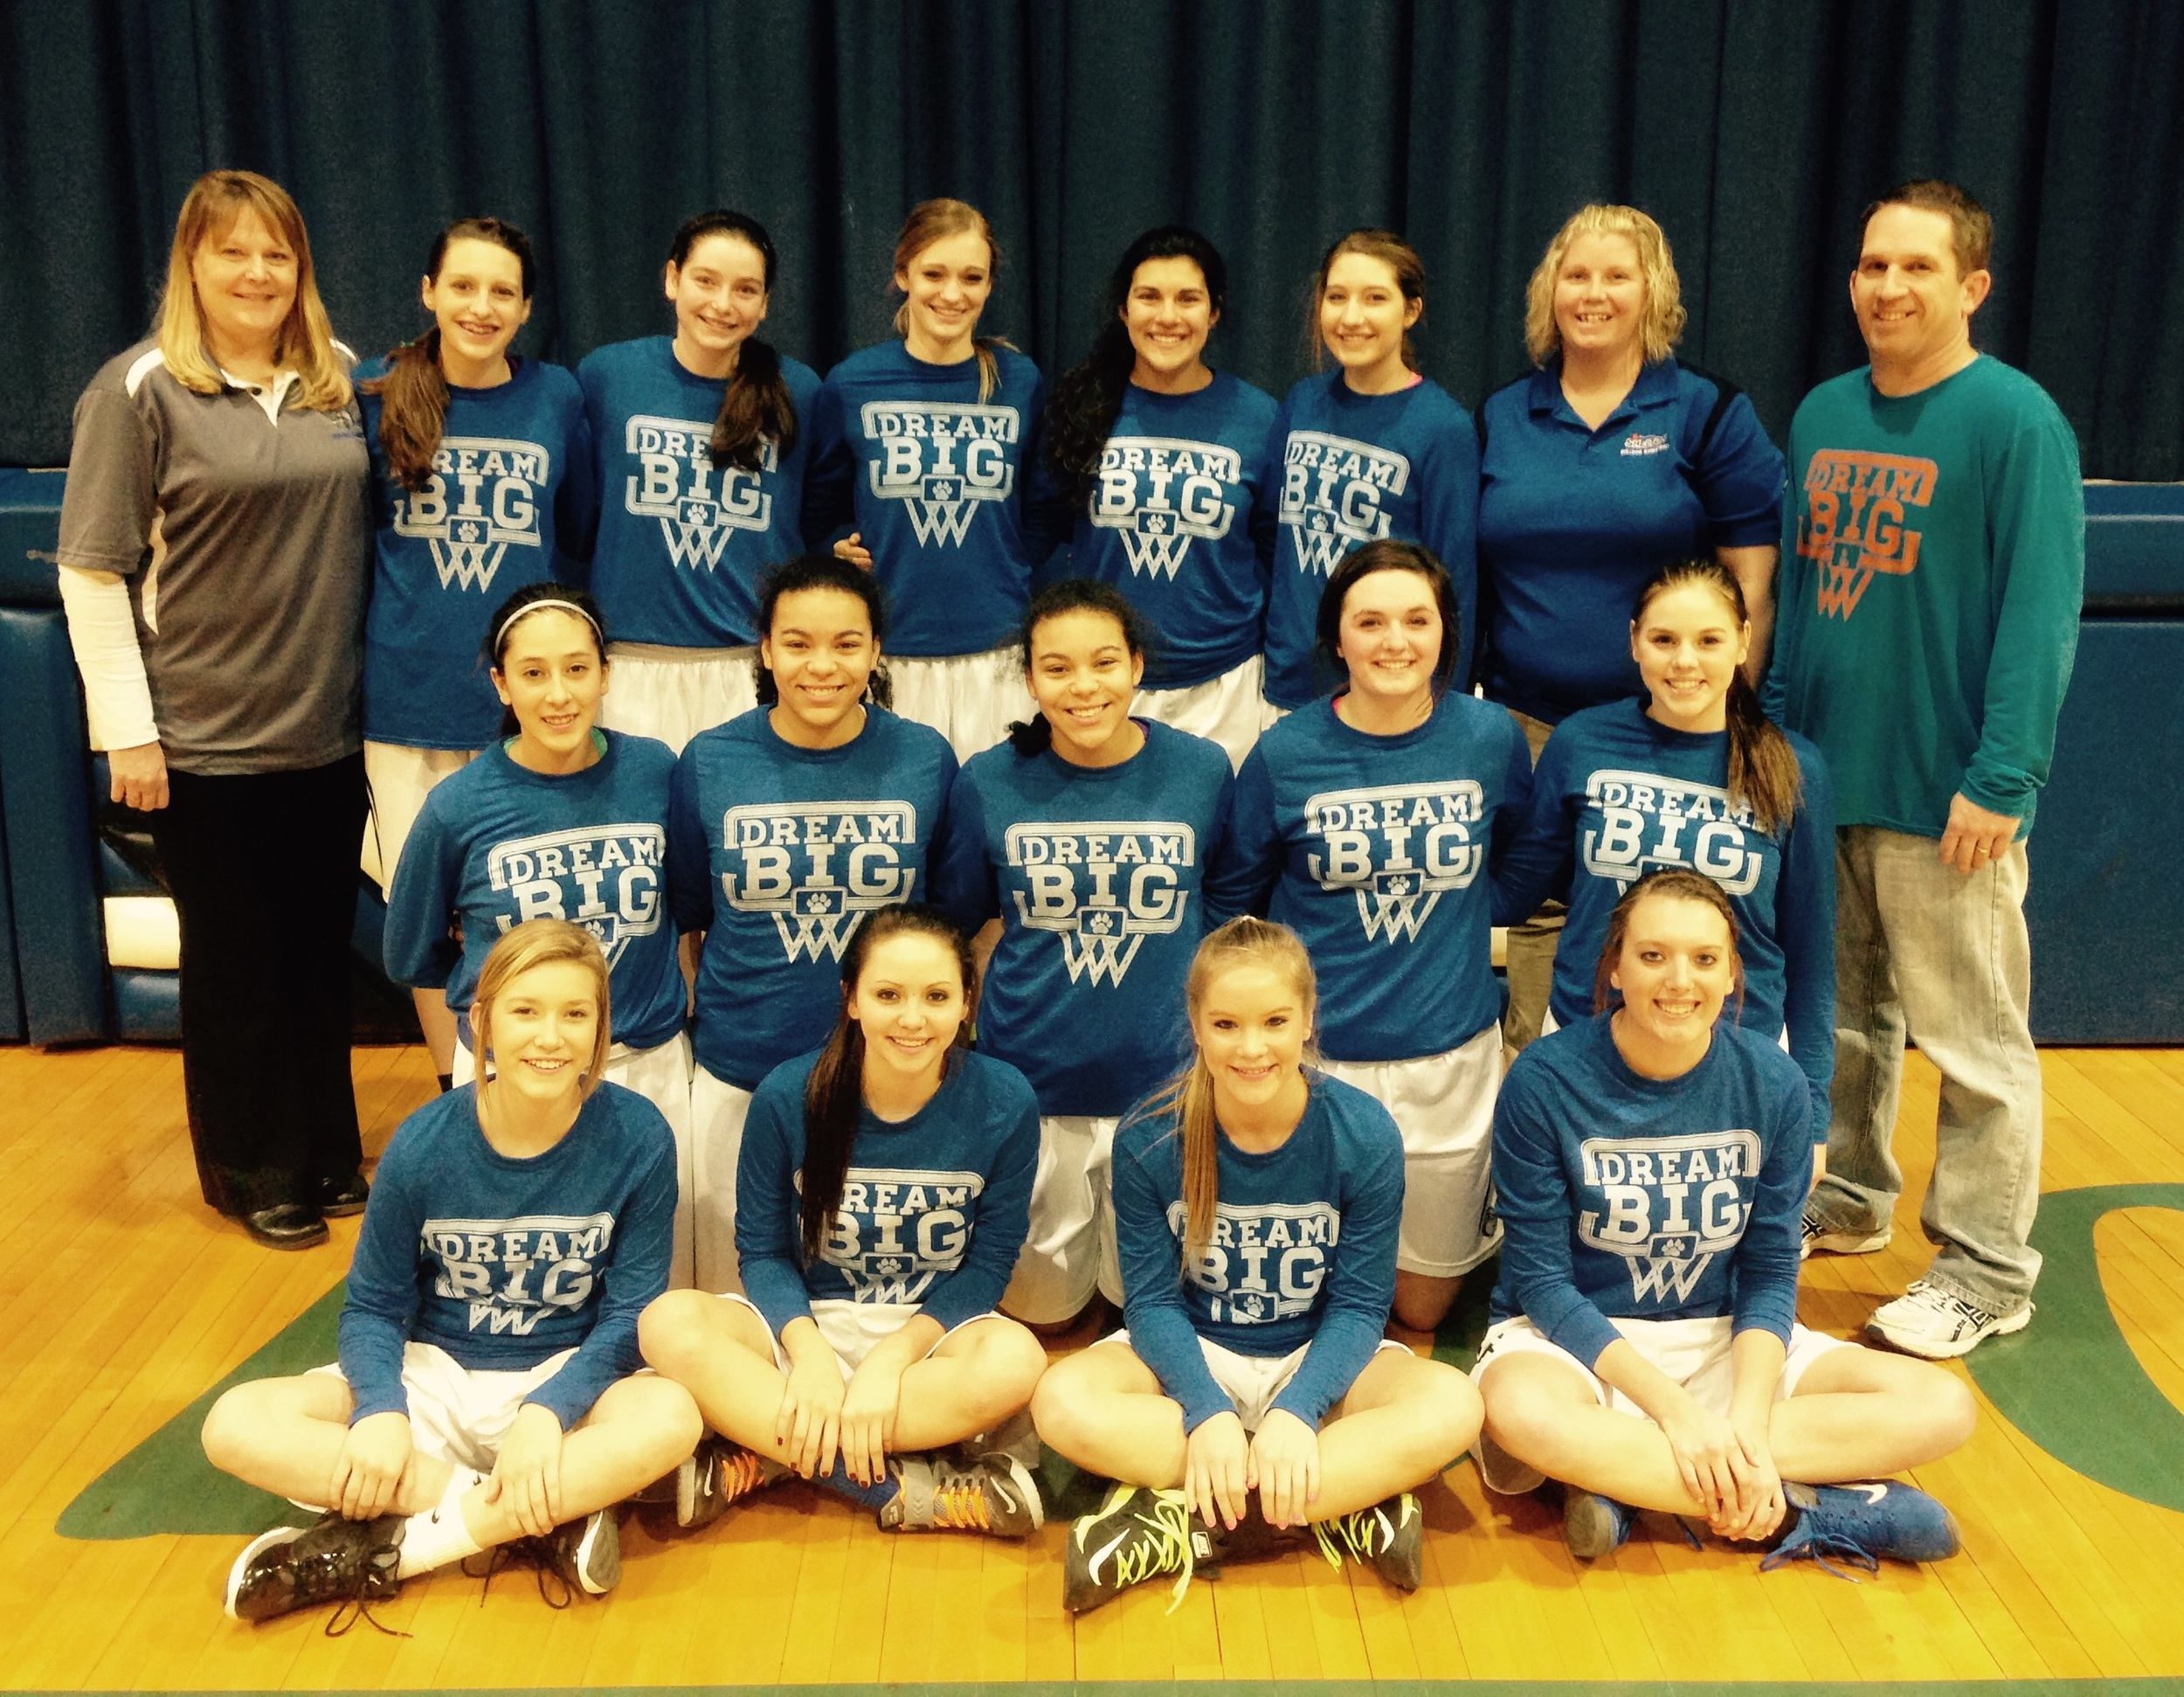 """The Shelton Lady Bulldogs helped us spread the word all season by wearing our """"Dream Big"""" shirts. Thank you so much! We really appreciate it! Go Bulldogs!"""